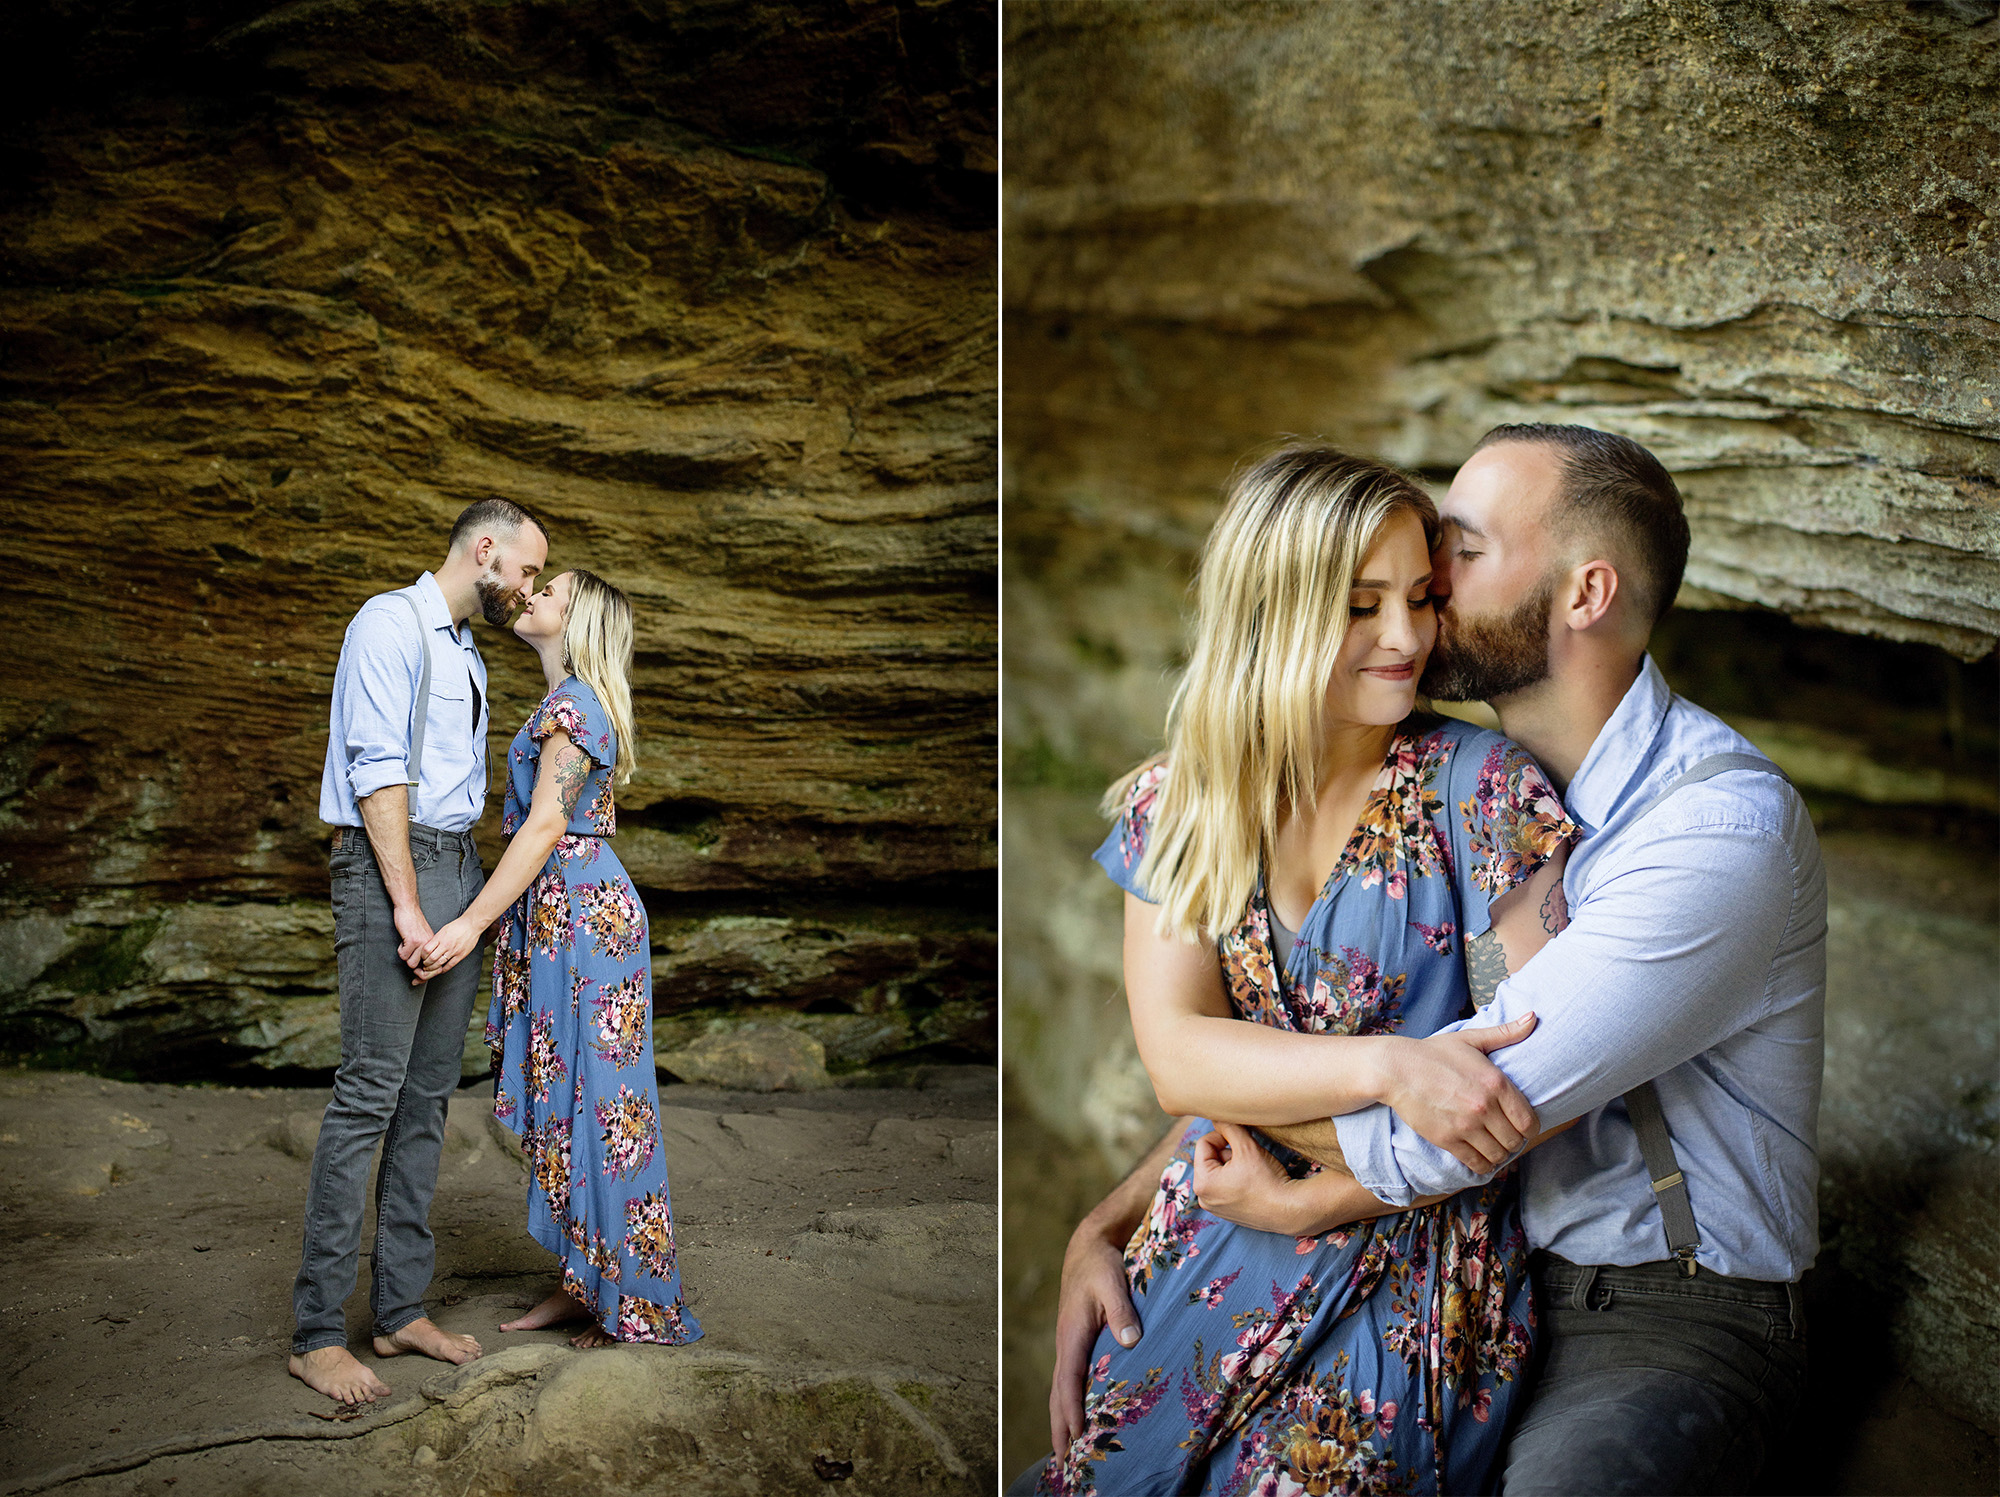 Seriously_Sabrina_Photography_Red_River_Gorge_Engagement_Session_Monika_Steven_14.jpg